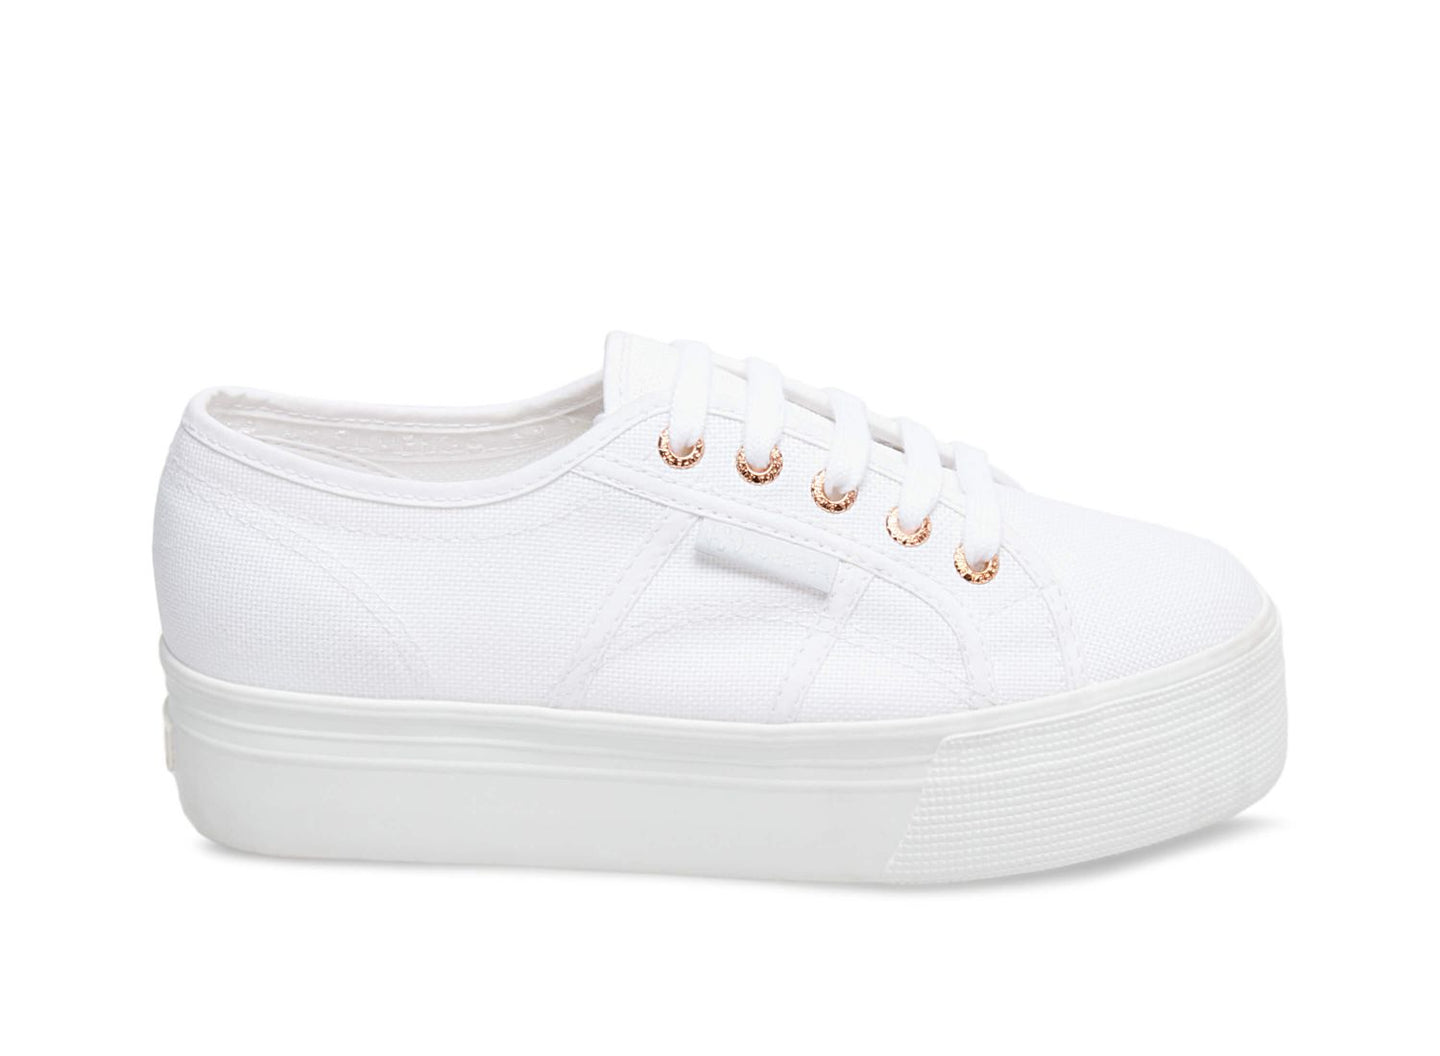 2790 ACOTW WHITE ROSE GOLD - Women's